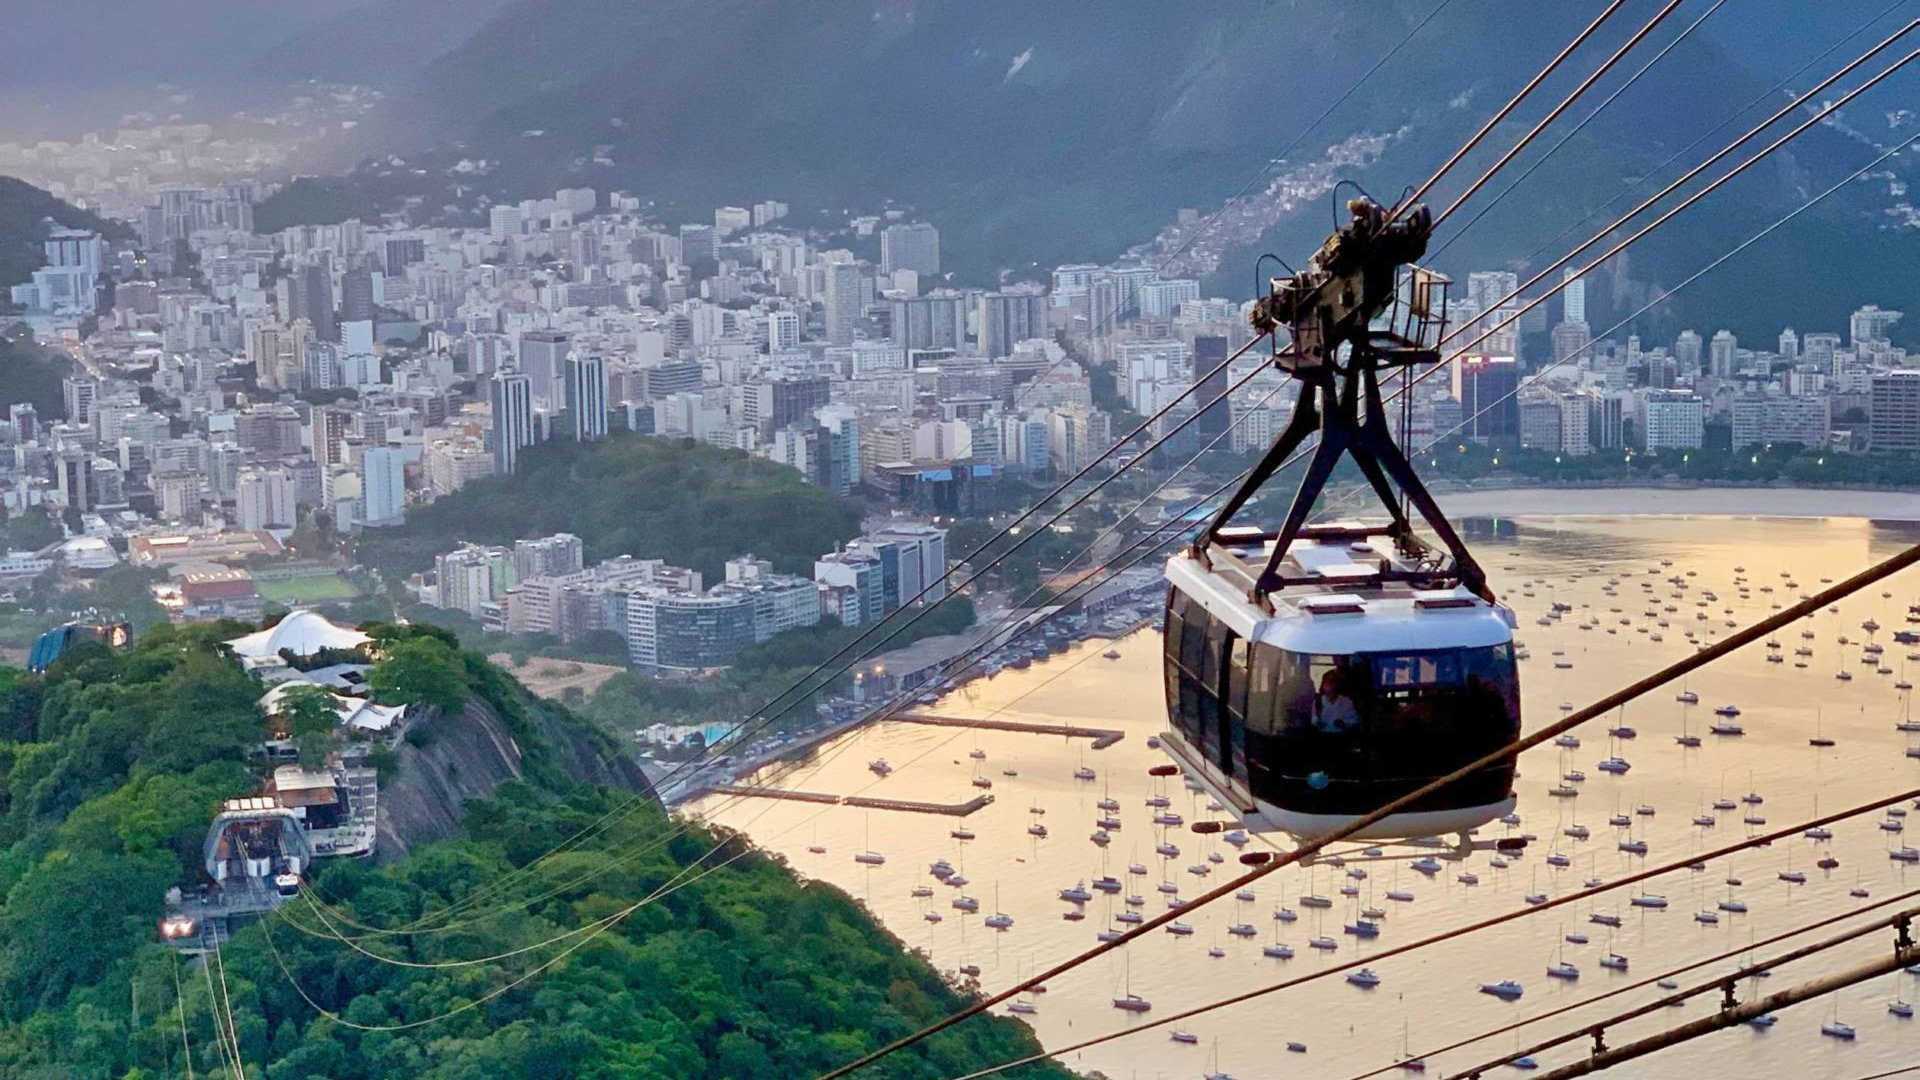 The cable cars running up the city in Rio de Janeiro